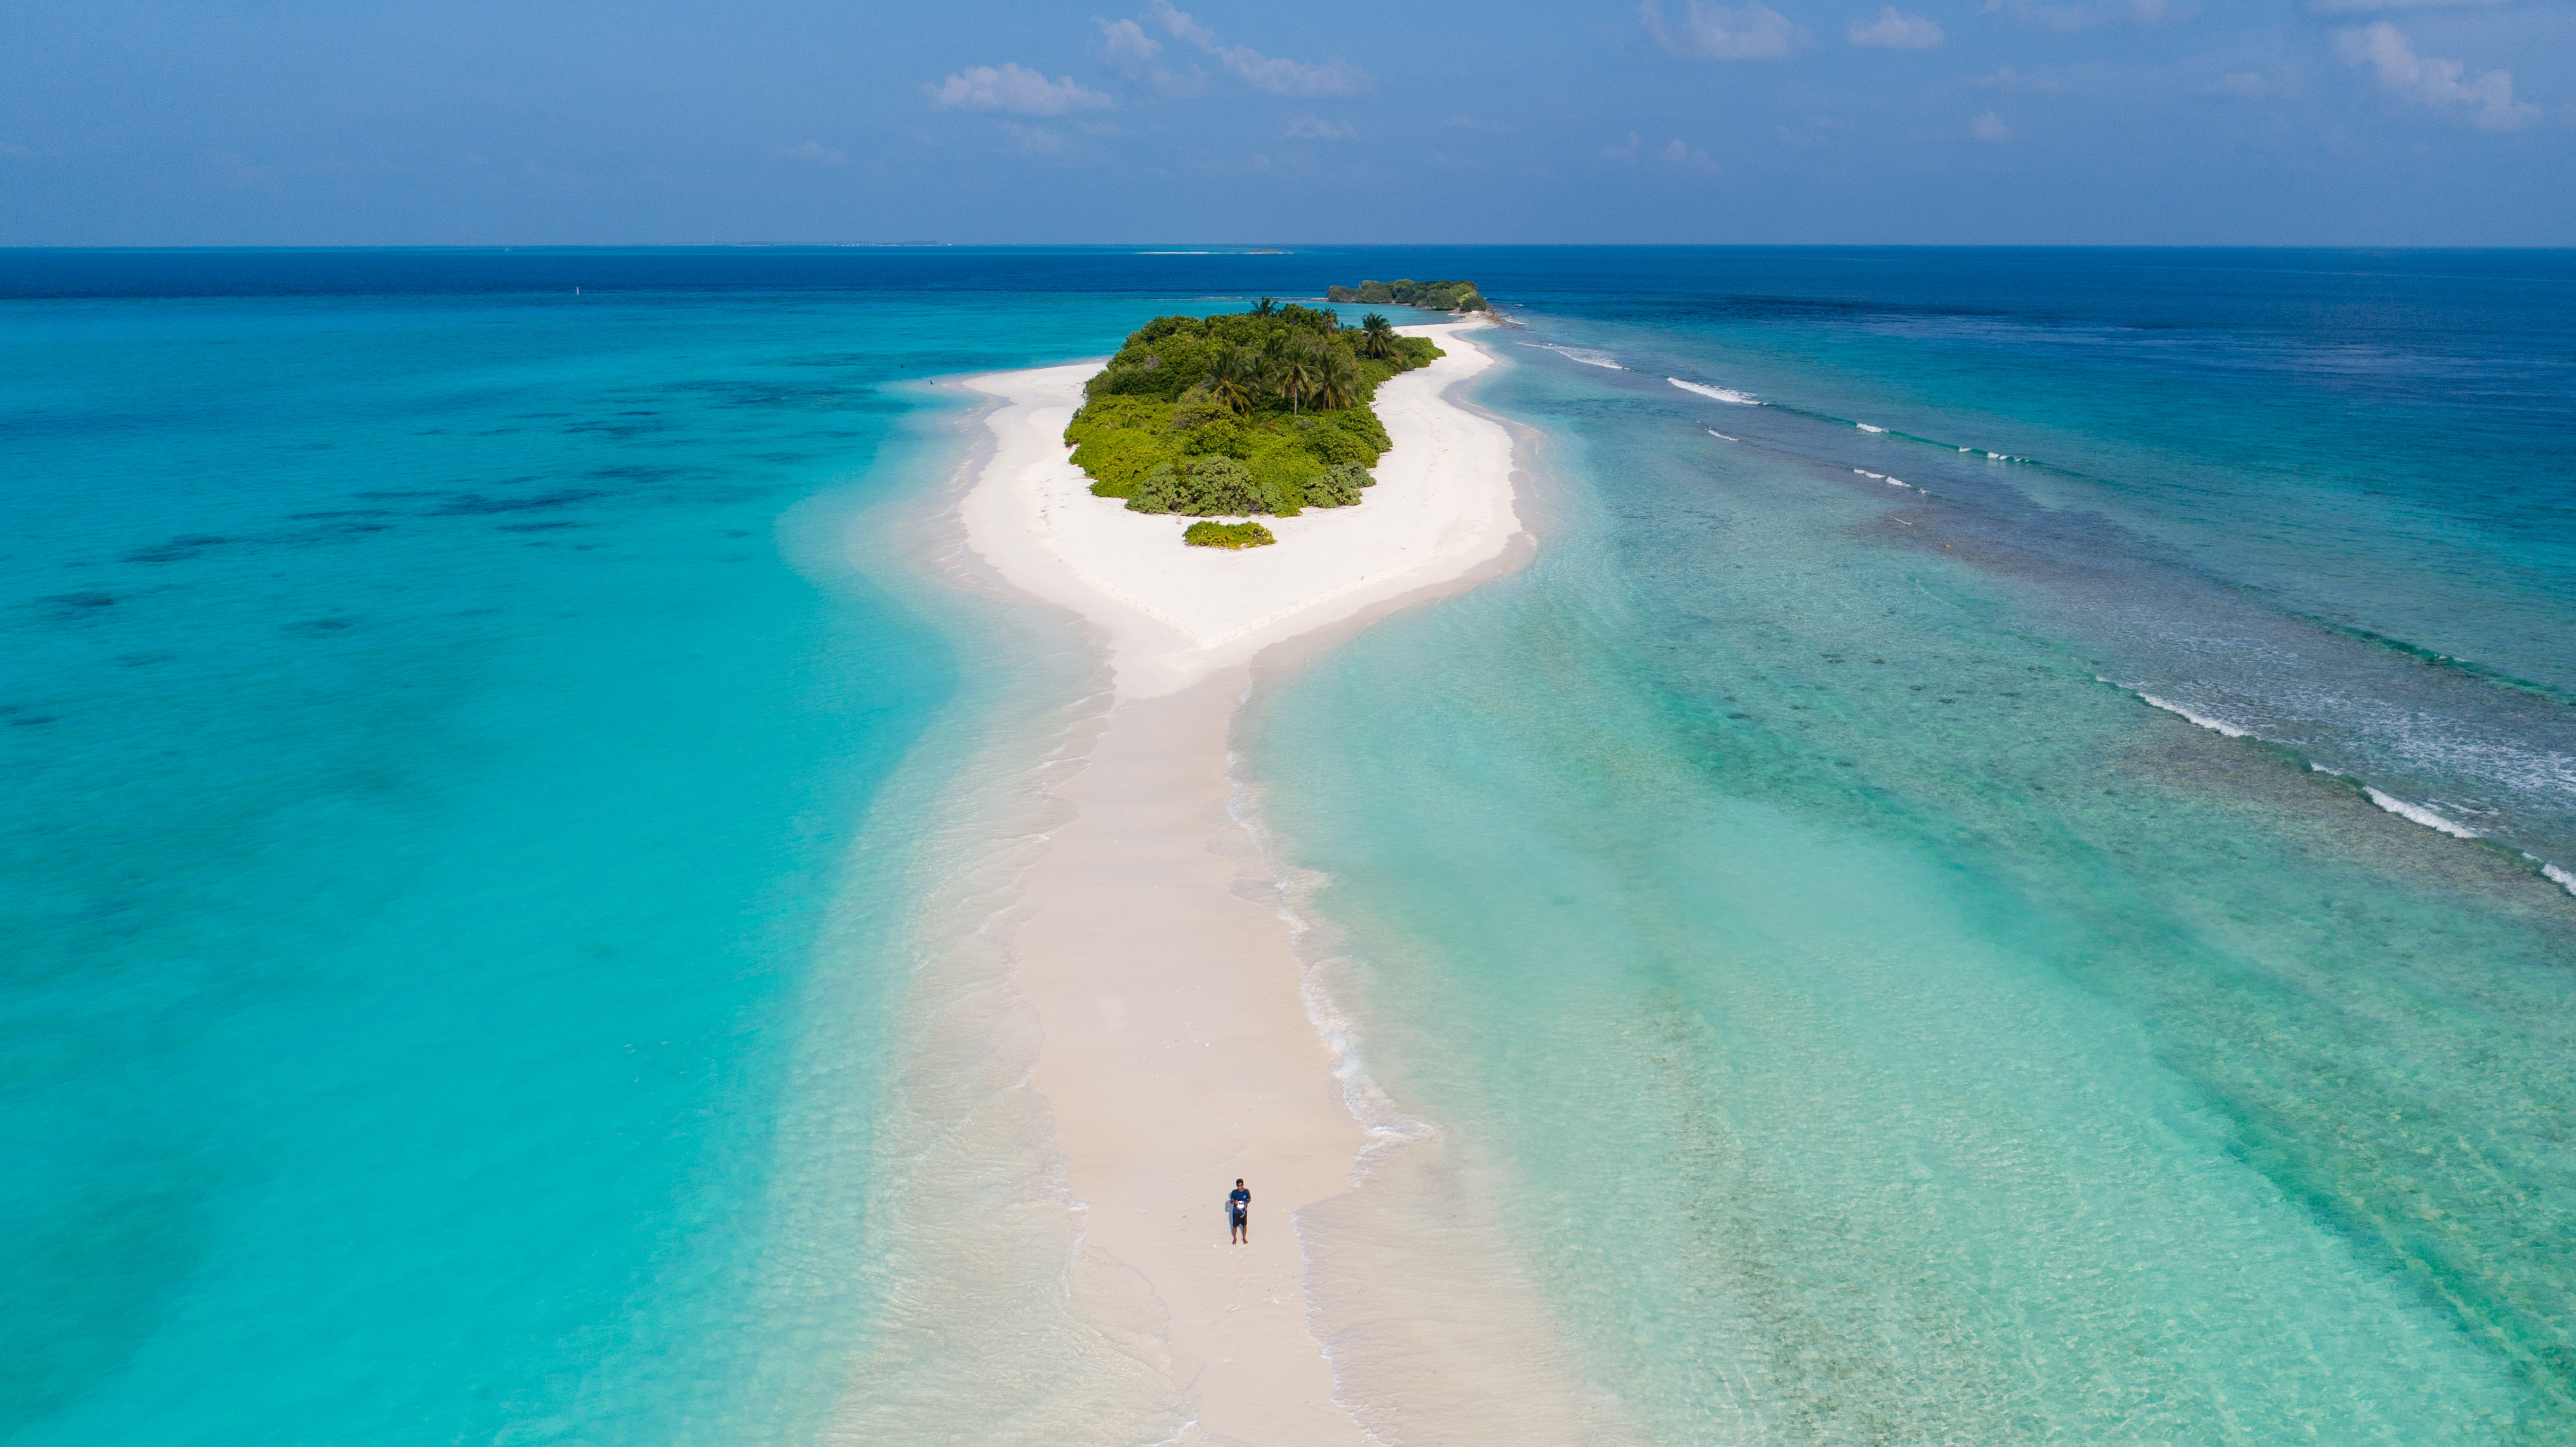 aerial photography of island during daytime